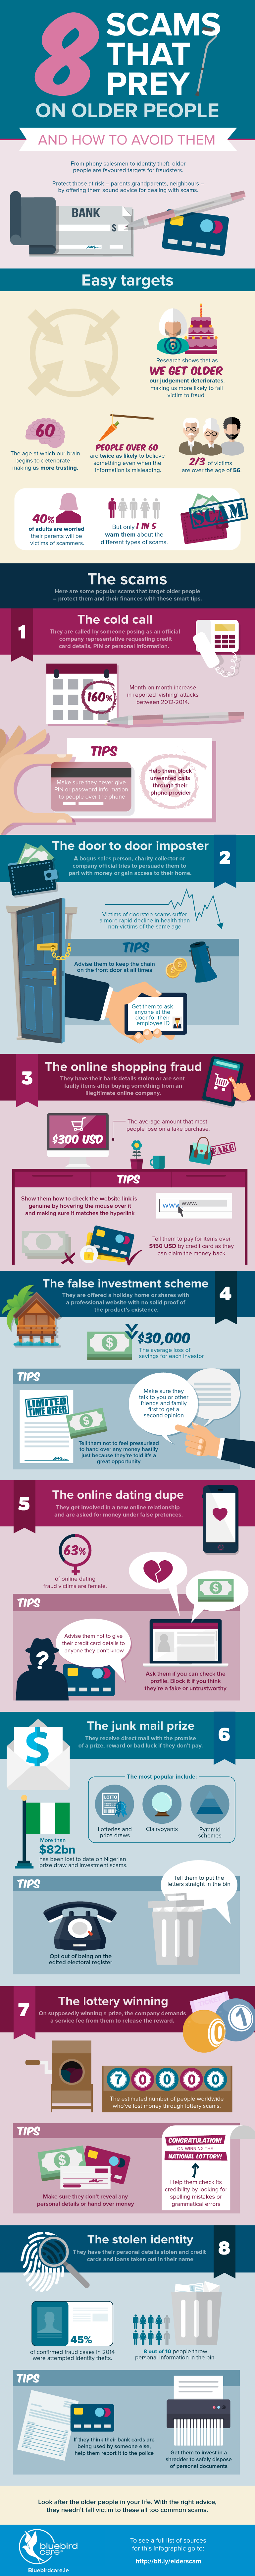 8 Scams That Prey on Older People